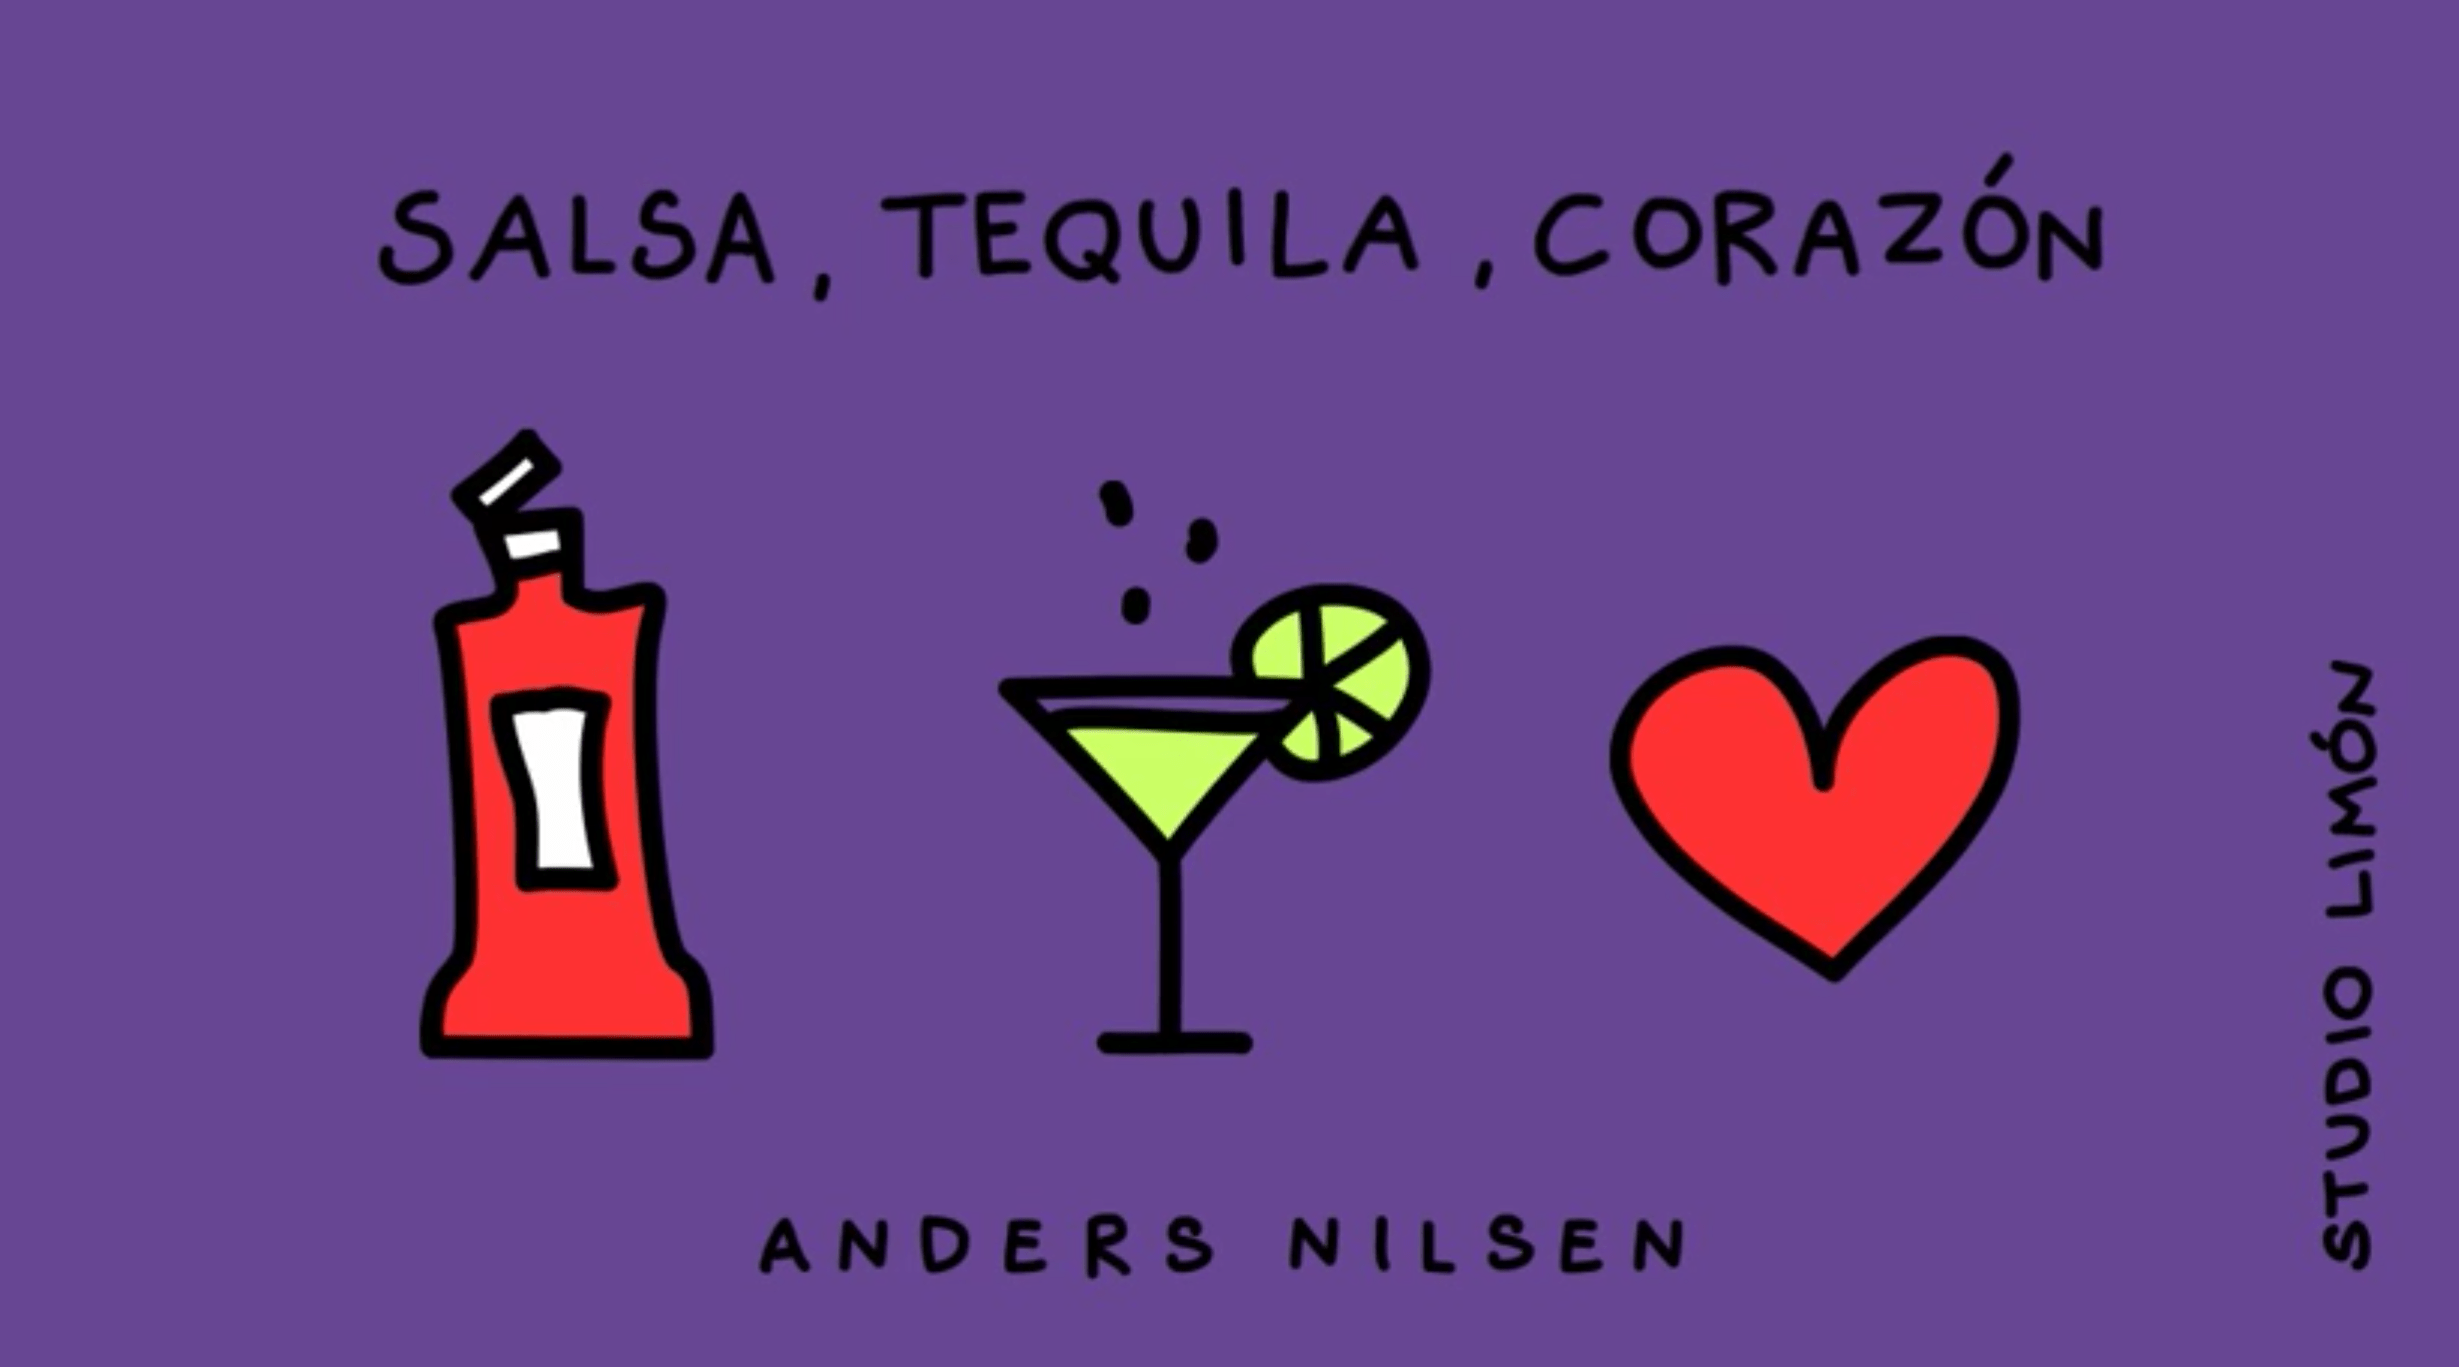 illustratie songtekst lyrics Salsa Tequila Corazon Anders Nilsen